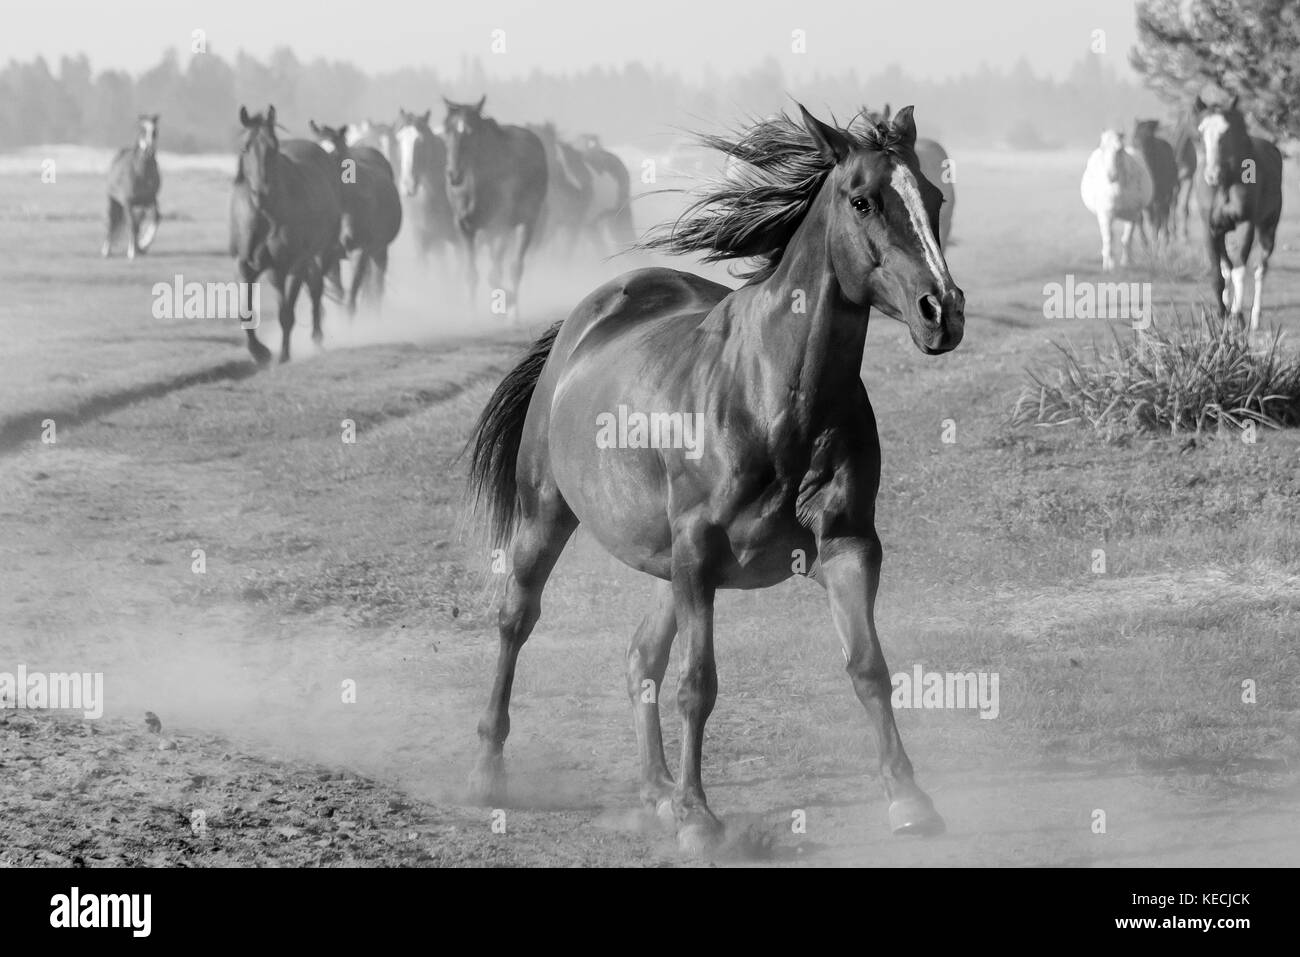 An unbridled American horse runs ahead of the herd in the American west, mane flying behind it, black and white - Stock Image